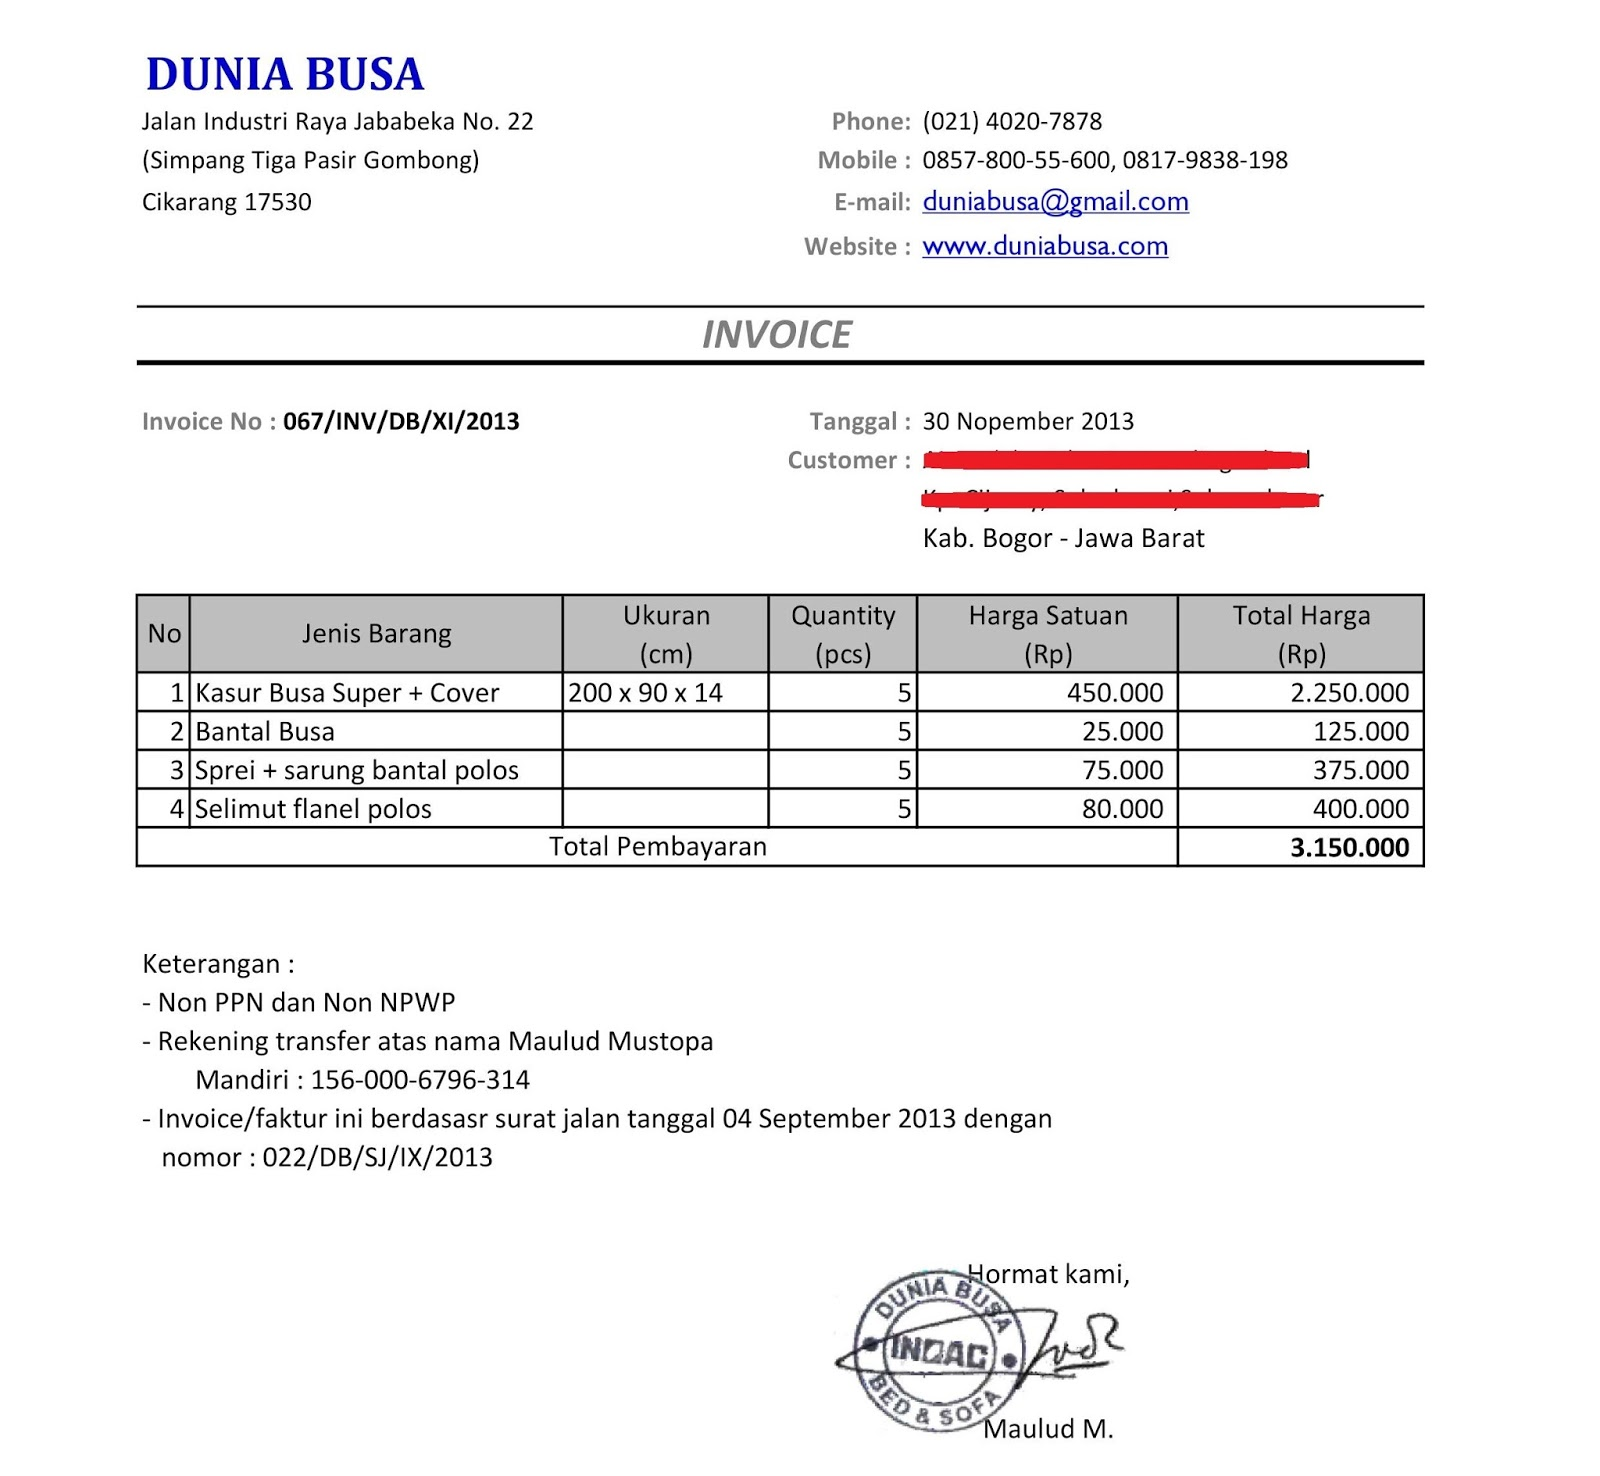 Aldiablosus  Unusual Free Invoice Online  Create Invoice Online  Invoice Template  With Luxury Contoh Format Invoice Atau Surat Tagihan  Brankas Arsip  Free Invoice Online With Divine Free Invoice App For Ipad Also How To Track Invoices In Addition Invoice From And How Long To Keep Invoices As Well As Tax Invoice Form Additionally Parking Invoice From Sklepco With Aldiablosus  Luxury Free Invoice Online  Create Invoice Online  Invoice Template  With Divine Contoh Format Invoice Atau Surat Tagihan  Brankas Arsip  Free Invoice Online And Unusual Free Invoice App For Ipad Also How To Track Invoices In Addition Invoice From From Sklepco